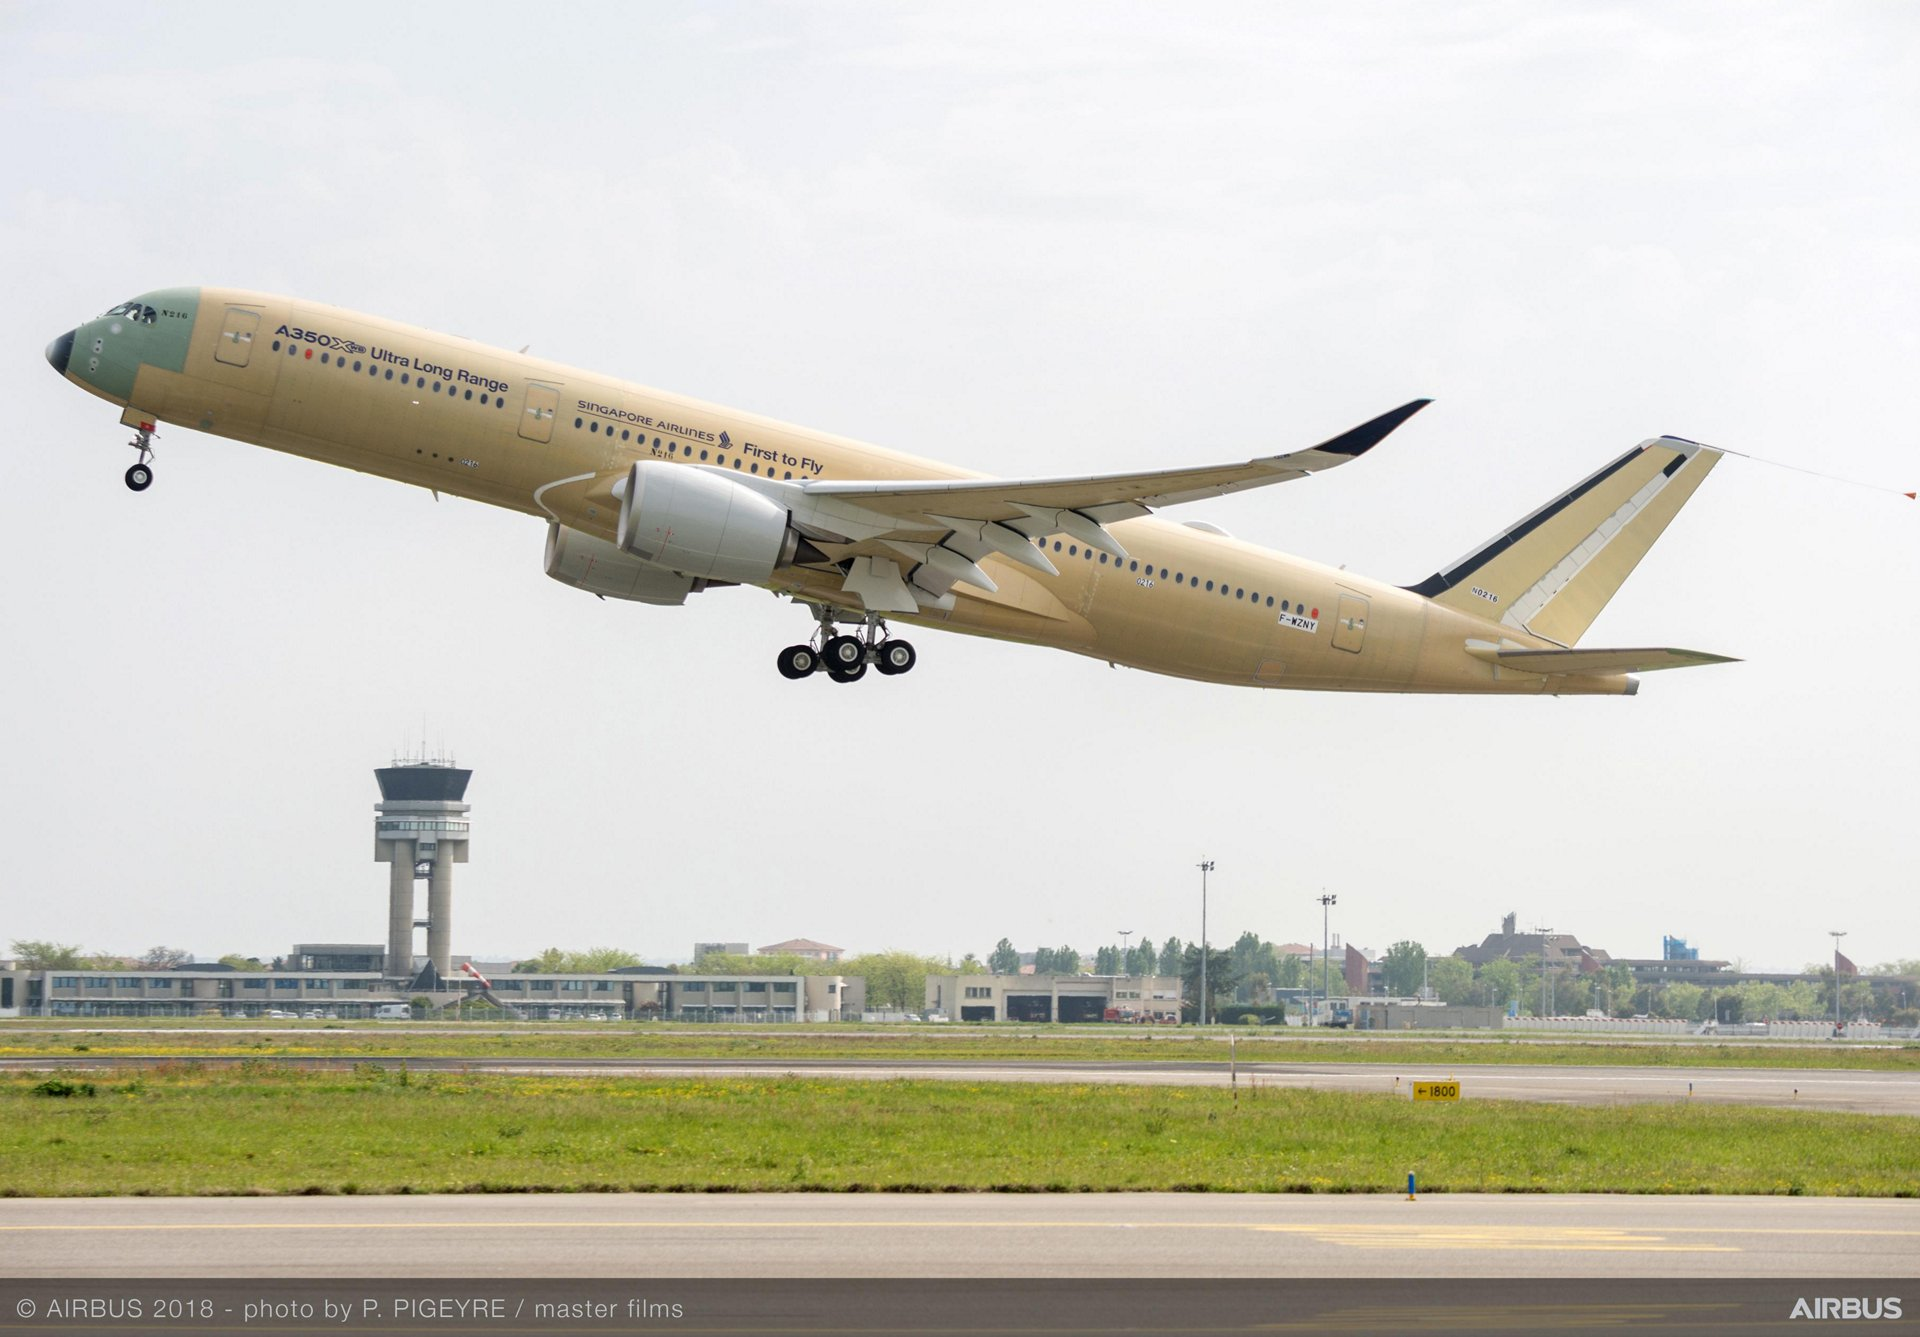 Airbus A350 XWB Ultra Long Range first flight - RadarBox.com Blog